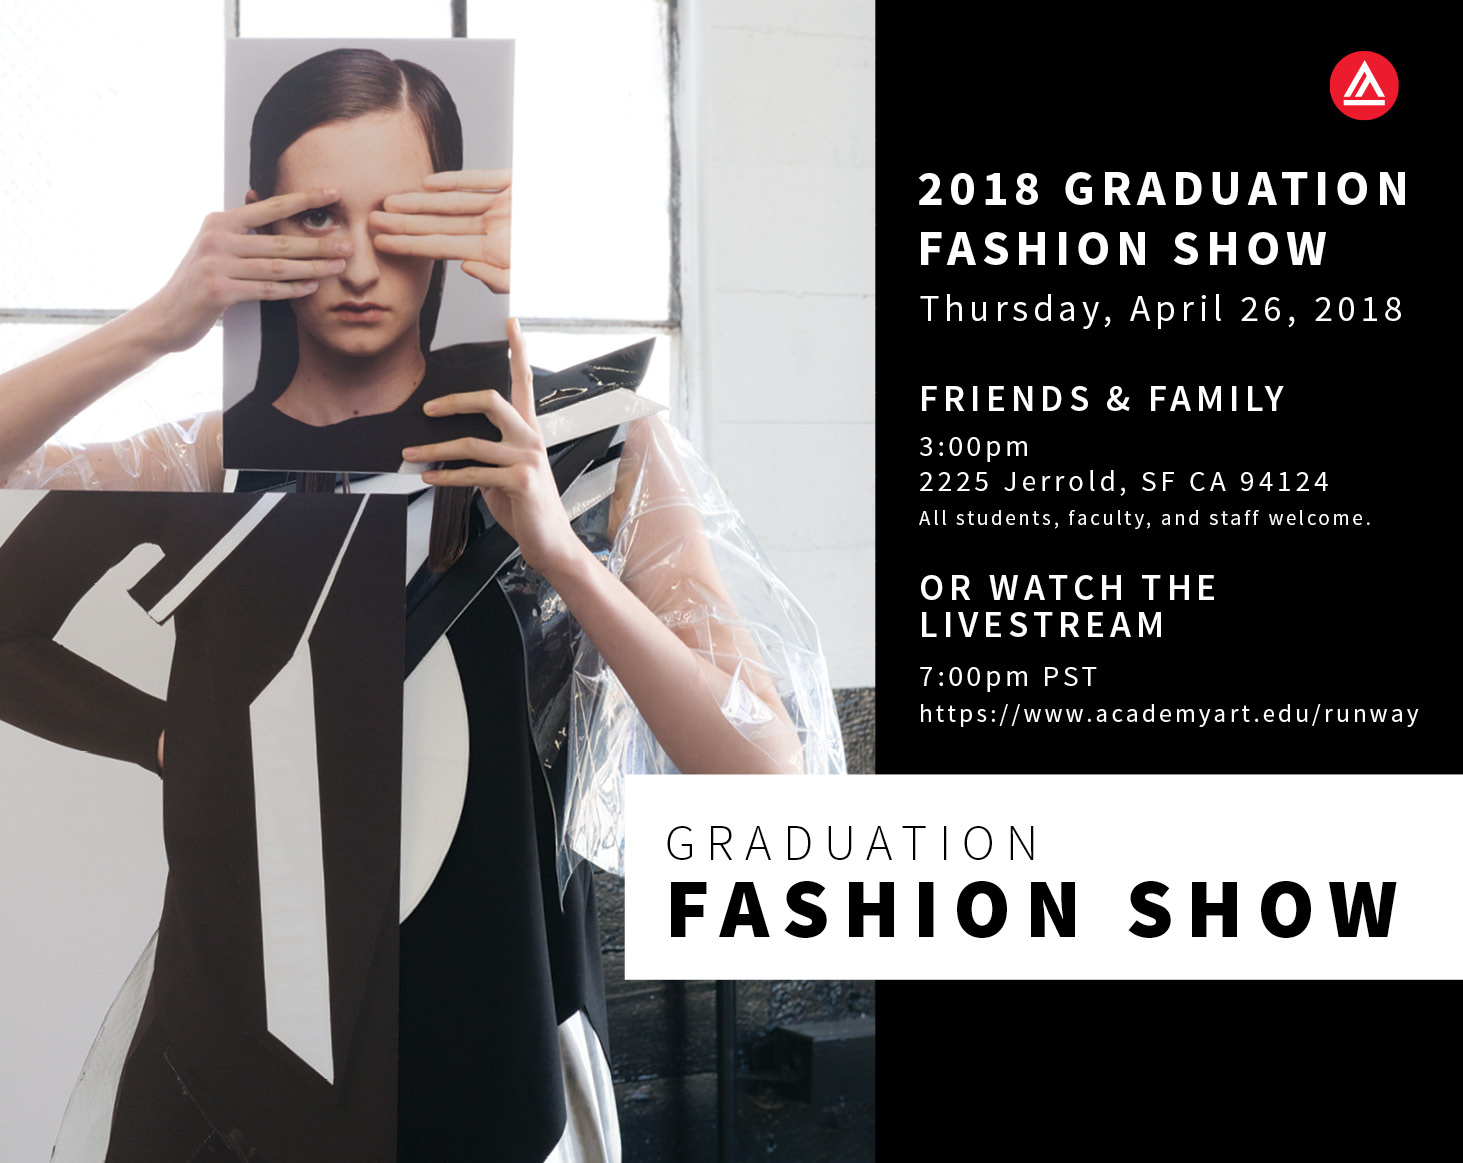 2018 Graduation Fashion Show: Livestream